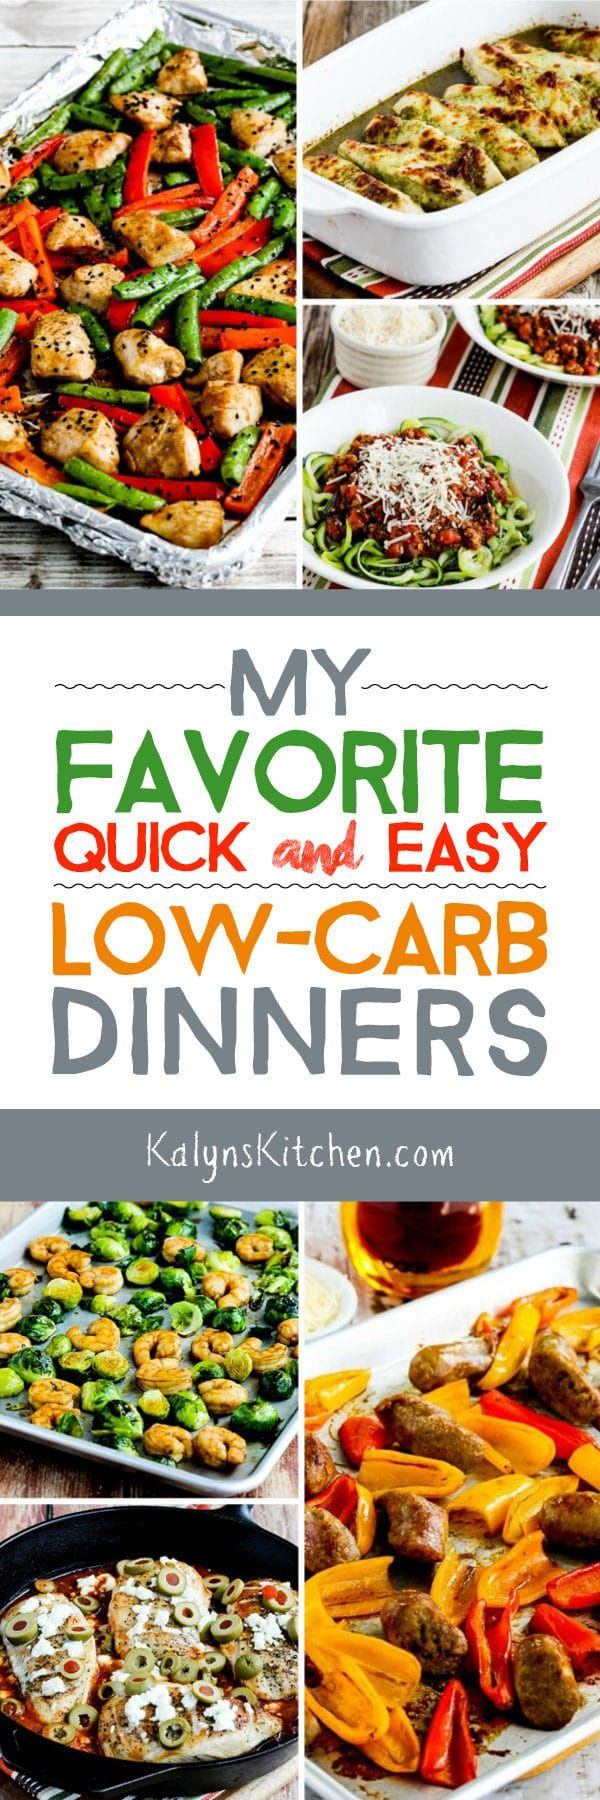 On Friday we share low-carb recipes you might like to try over the weekend, and this weekend I know a lot of people are hunkering down with a new or newly resumed low-carb eating resolve. So here's a round-up of My Favorite Quick-and-Easy Low-Carb Dinners to welcome to New Year! Check out Recipe Round-Ups for …